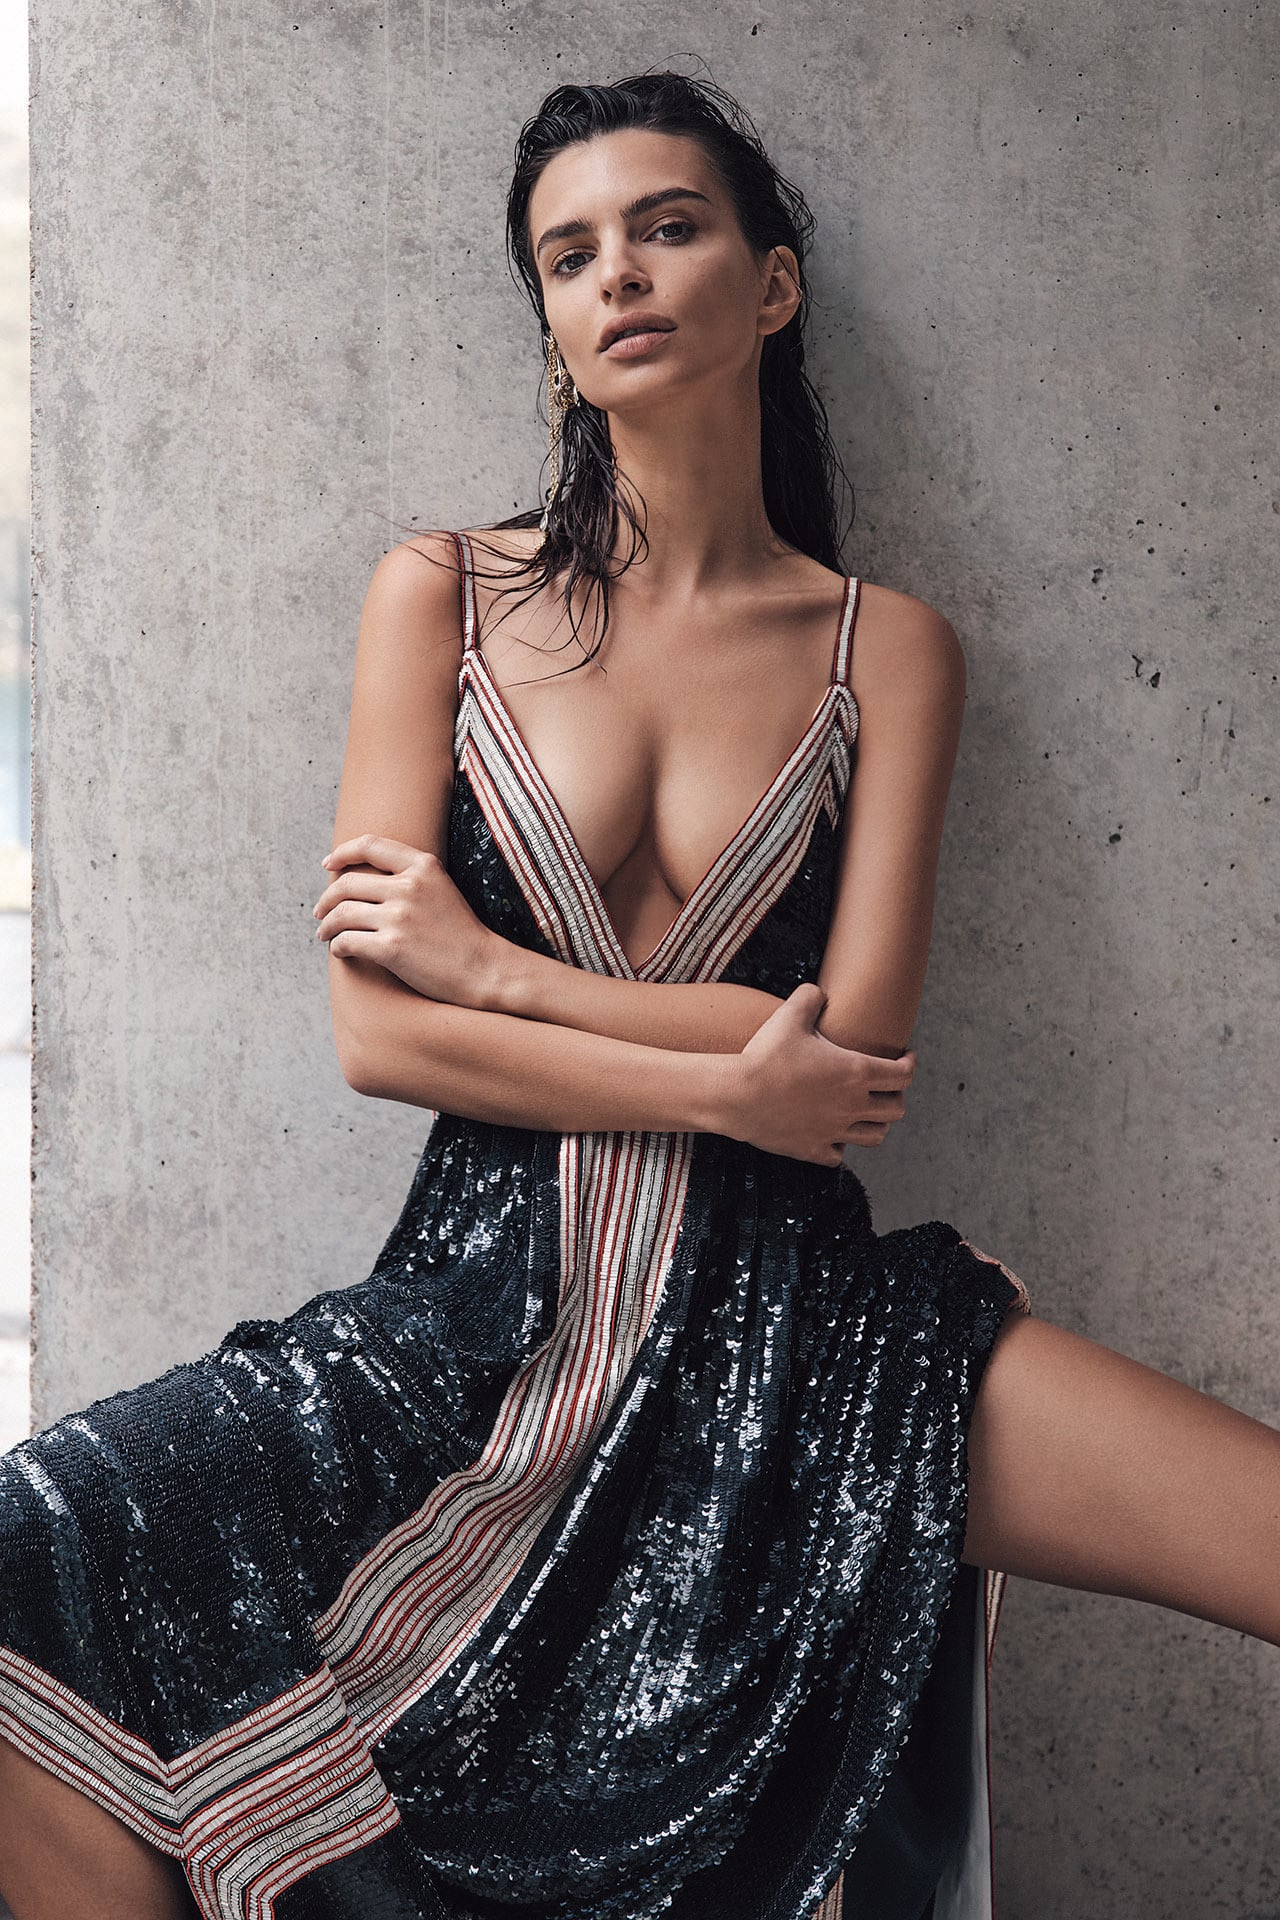 Emily Ratajkowski Nice Modelling - Emily Ratajkowski Net Worth, Pics, Wallpapers, Career and Biography